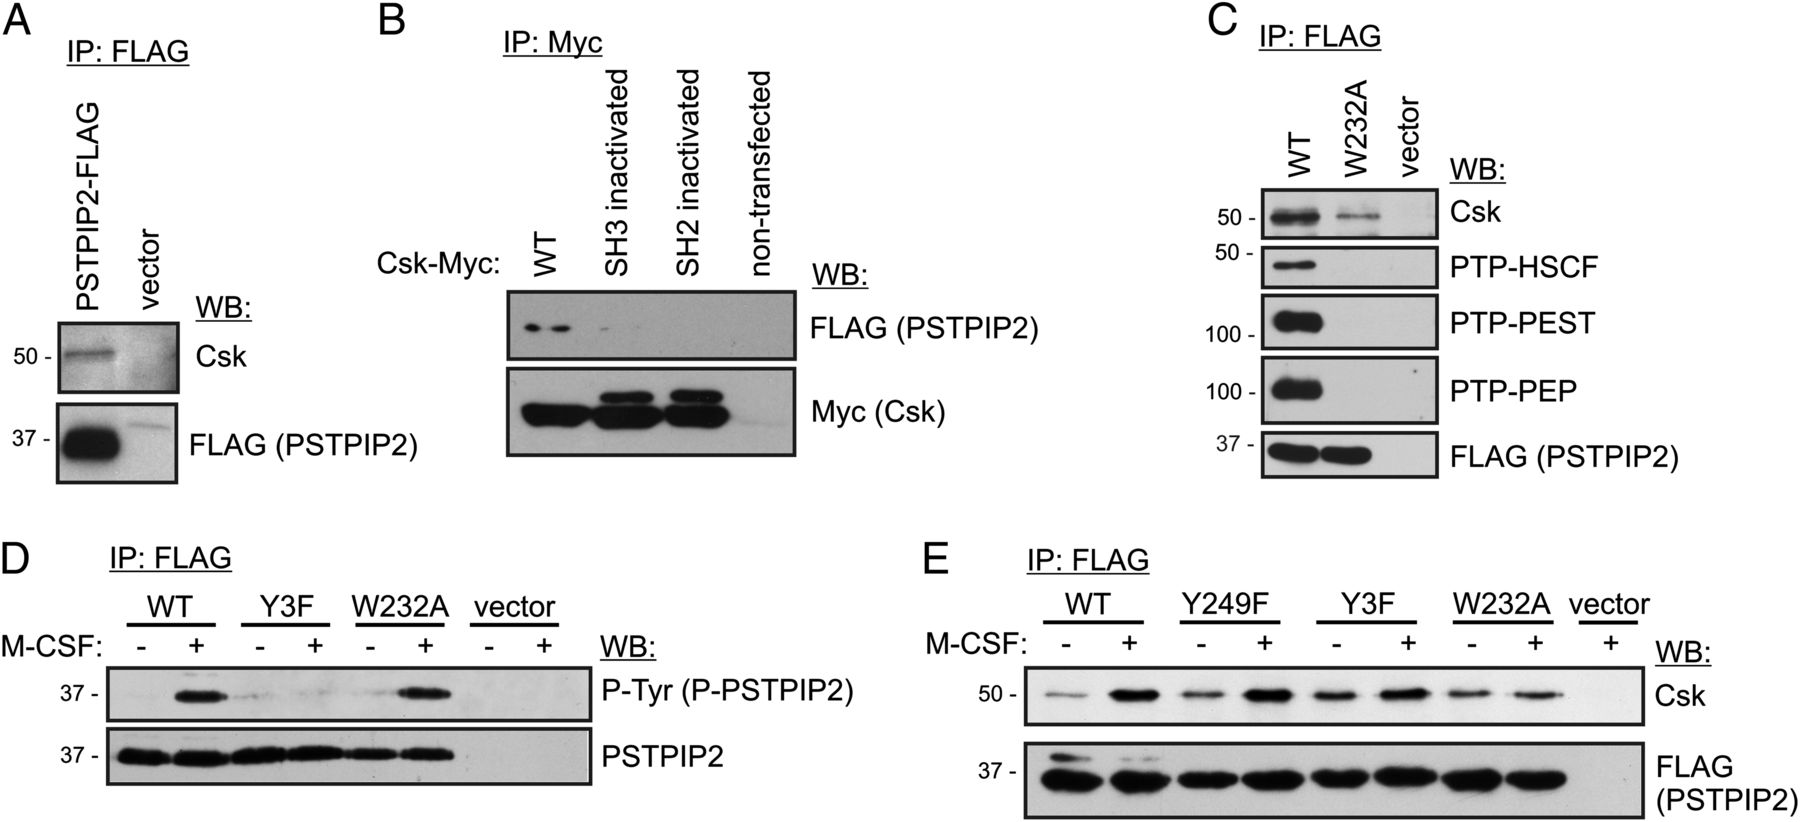 PSTPIP2, a Protein Associated with Autoinflammatory Disease